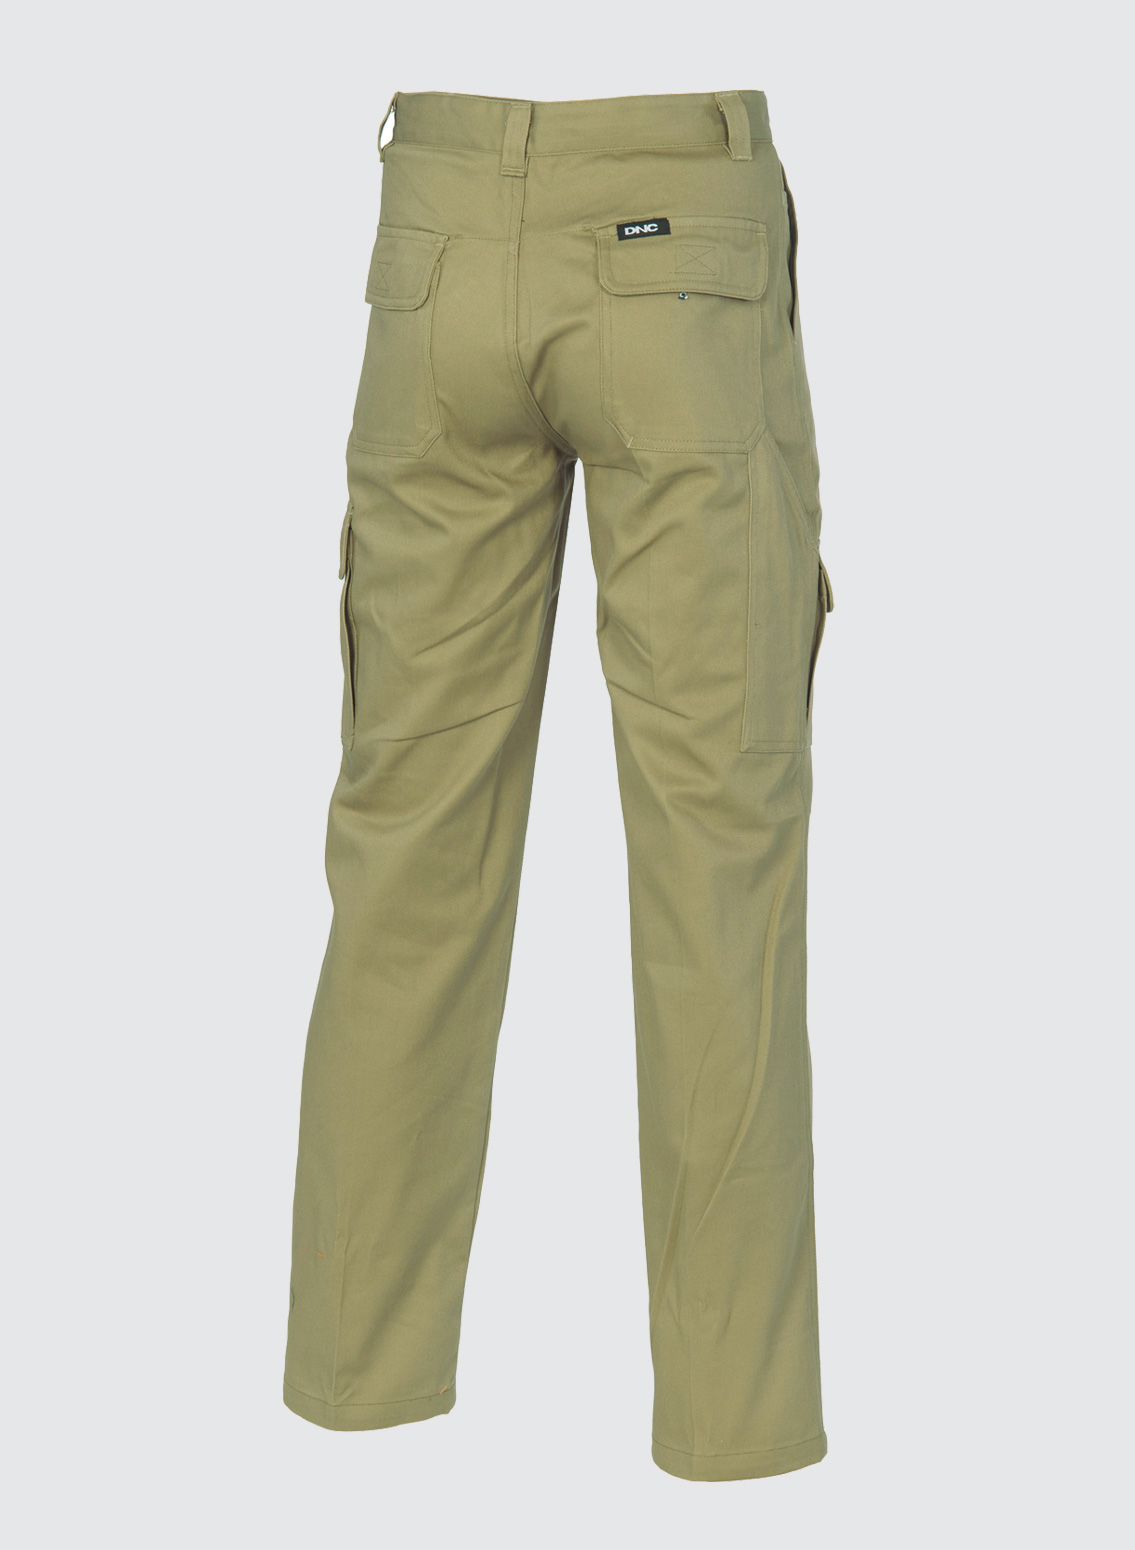 3312 Cotton Drill Cargo Pants Business Image Group